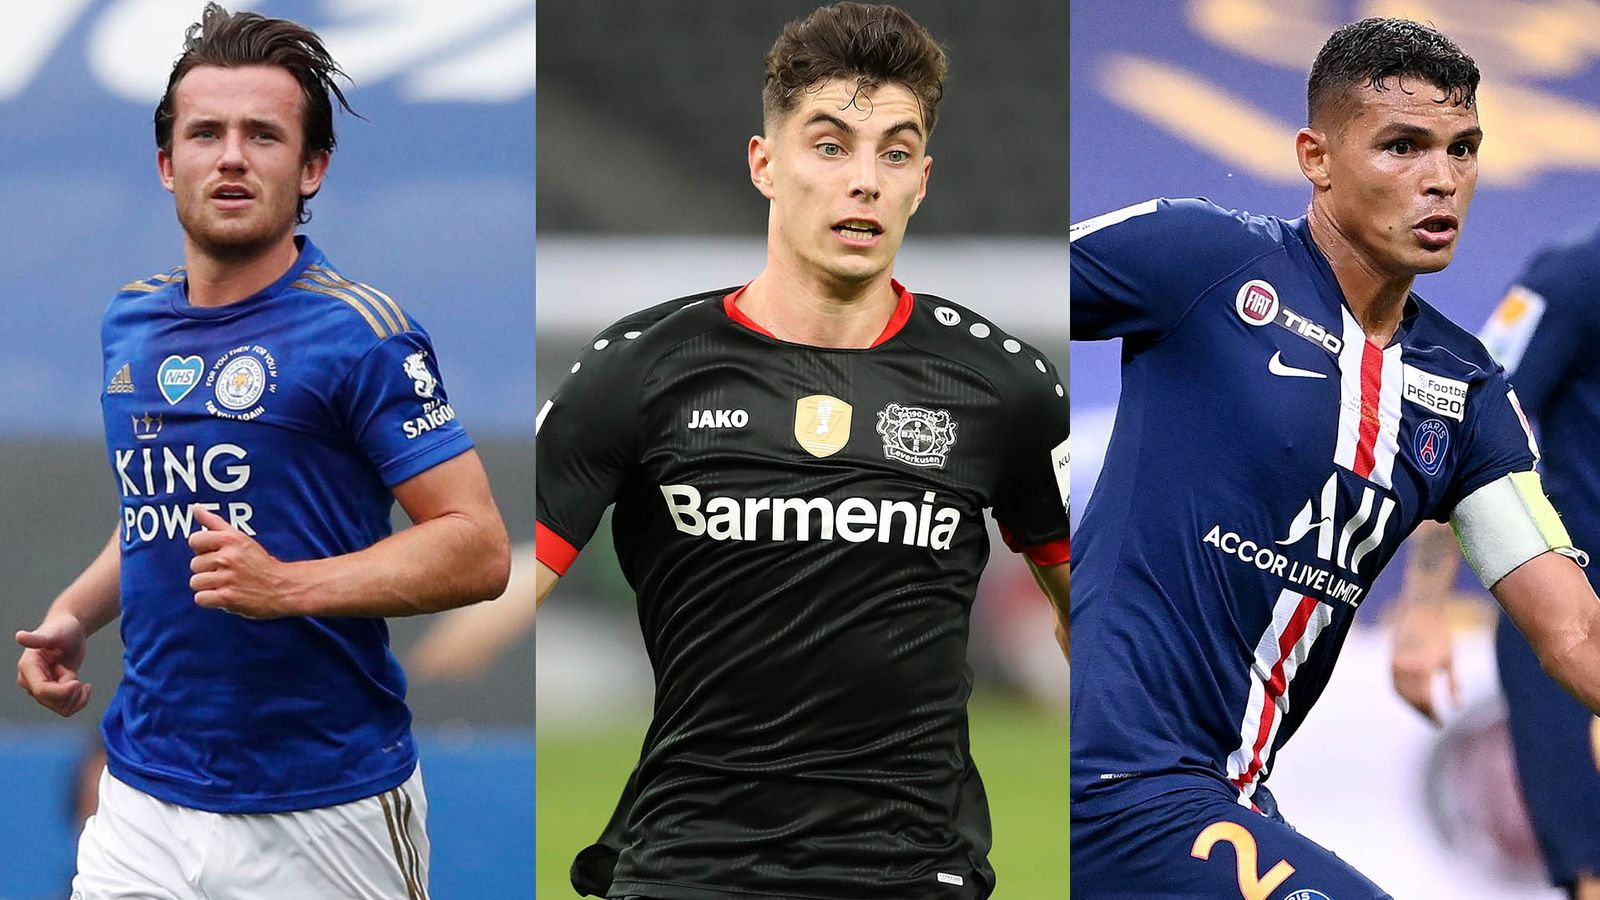 Chelsea Close To Agreeing Kai Havertz Ben Chilwell And Thiago Silva Deals Football News Sky Sports